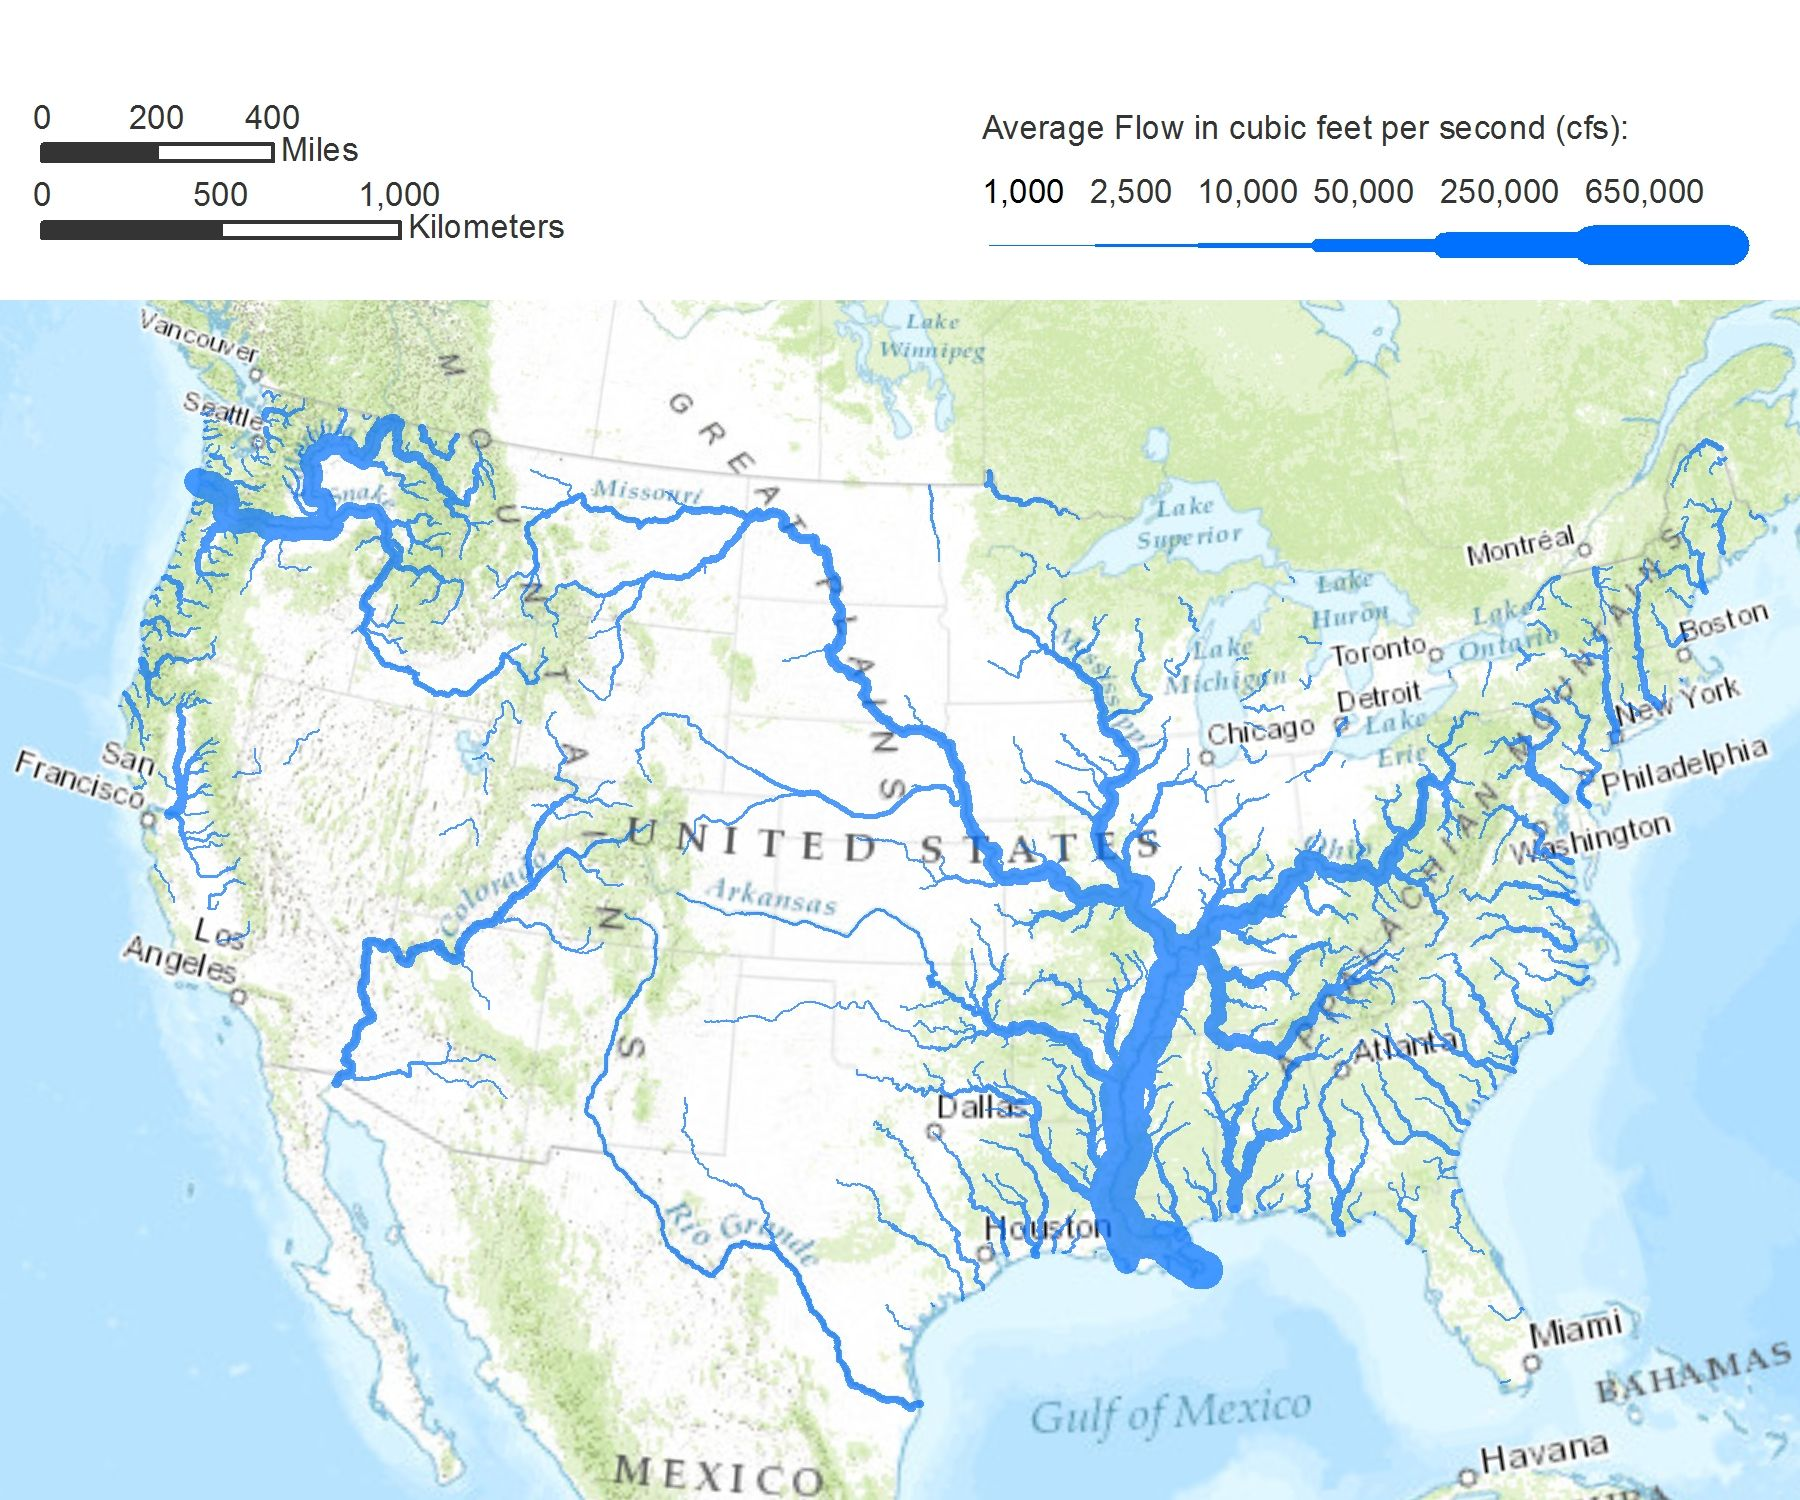 Flow Rates A Map Of The United States Illustrating Flow Rates Of - Bodies of water in us map